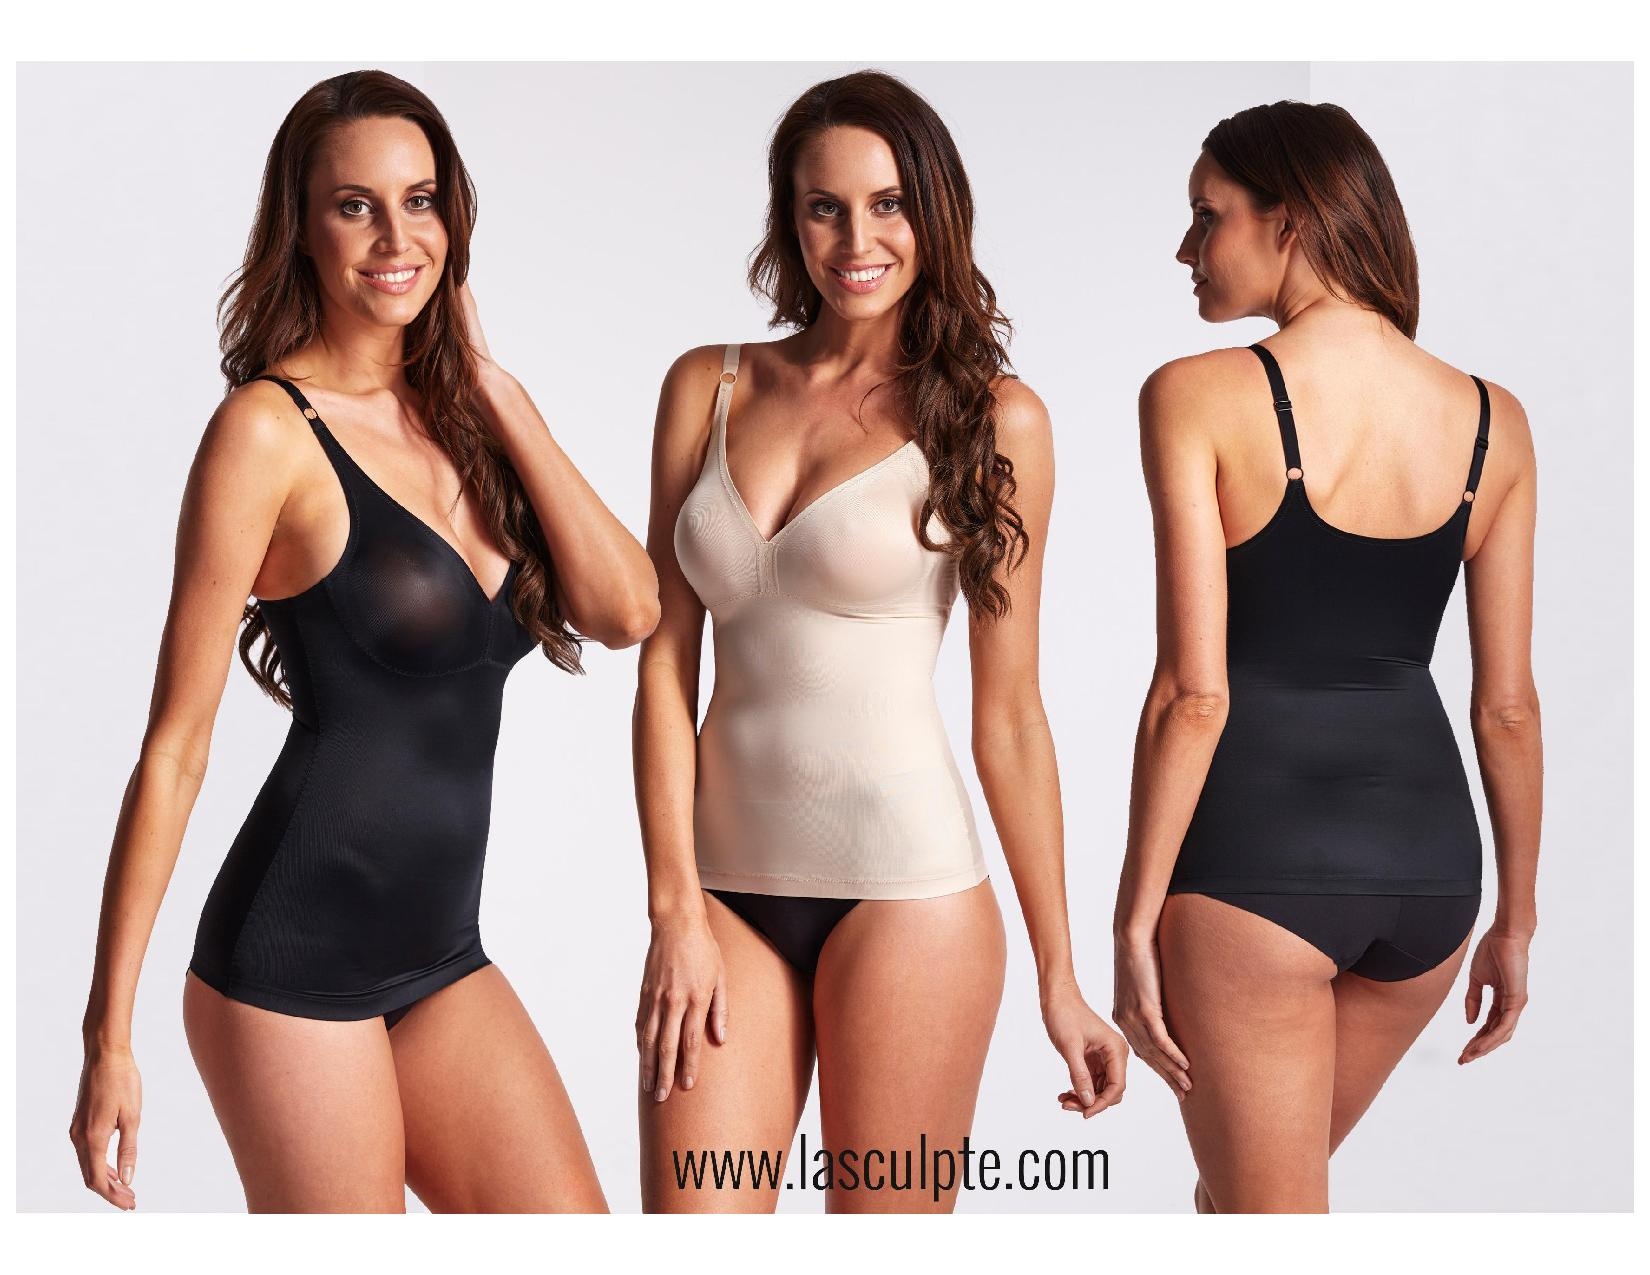 Lasculpte lookbook - Shapewear-page-005